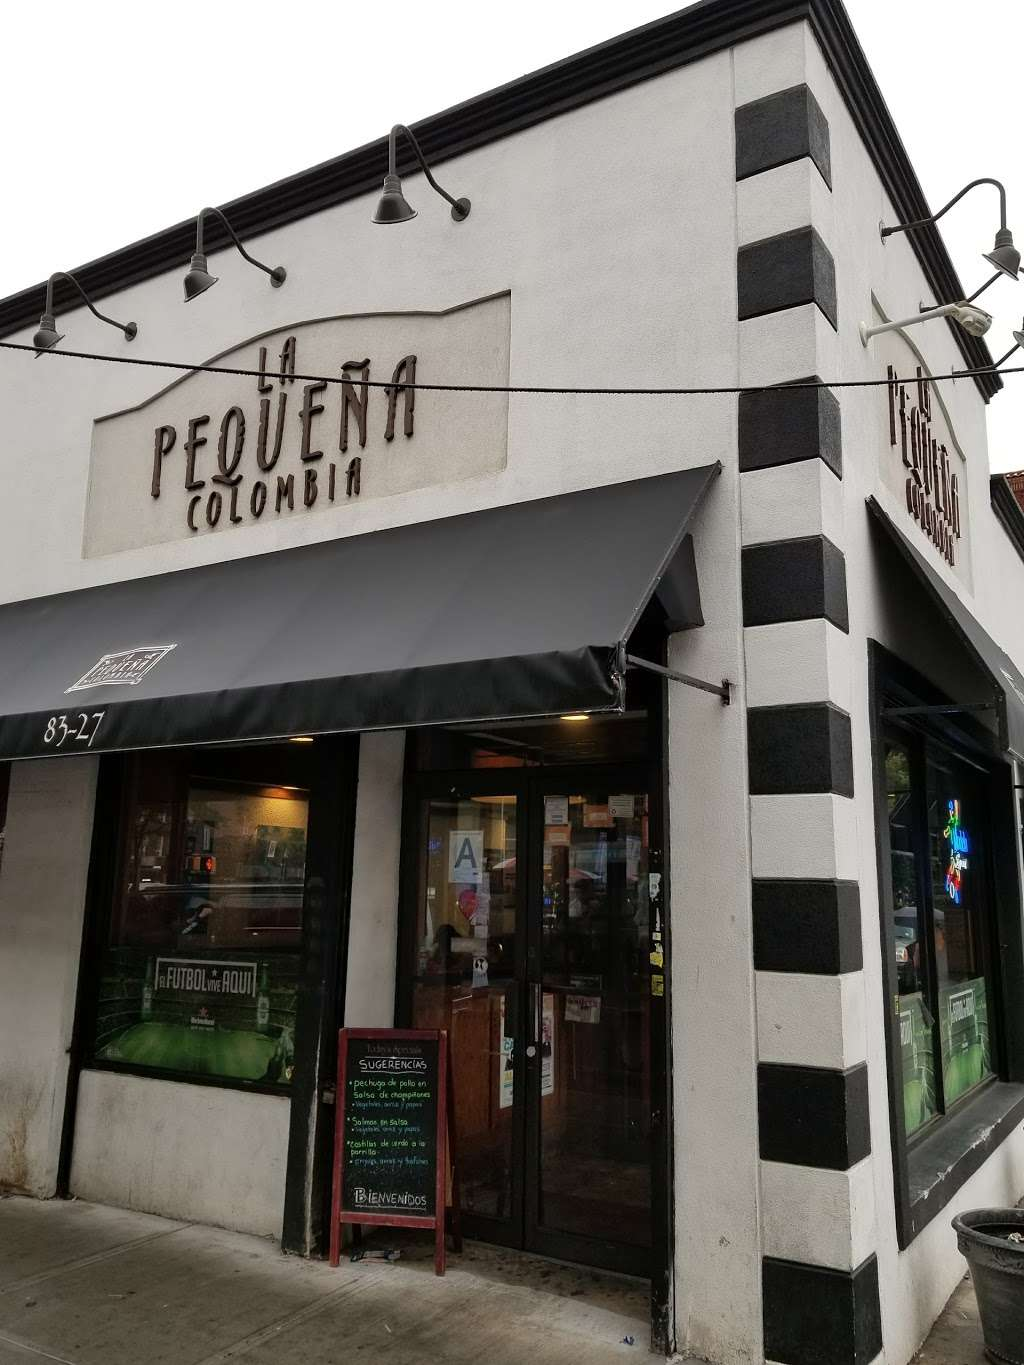 La Pequeña Colombia - restaurant  | Photo 4 of 10 | Address: 83-27 Roosevelt Ave, Jackson Heights, NY 11372, USA | Phone: (718) 478-8700